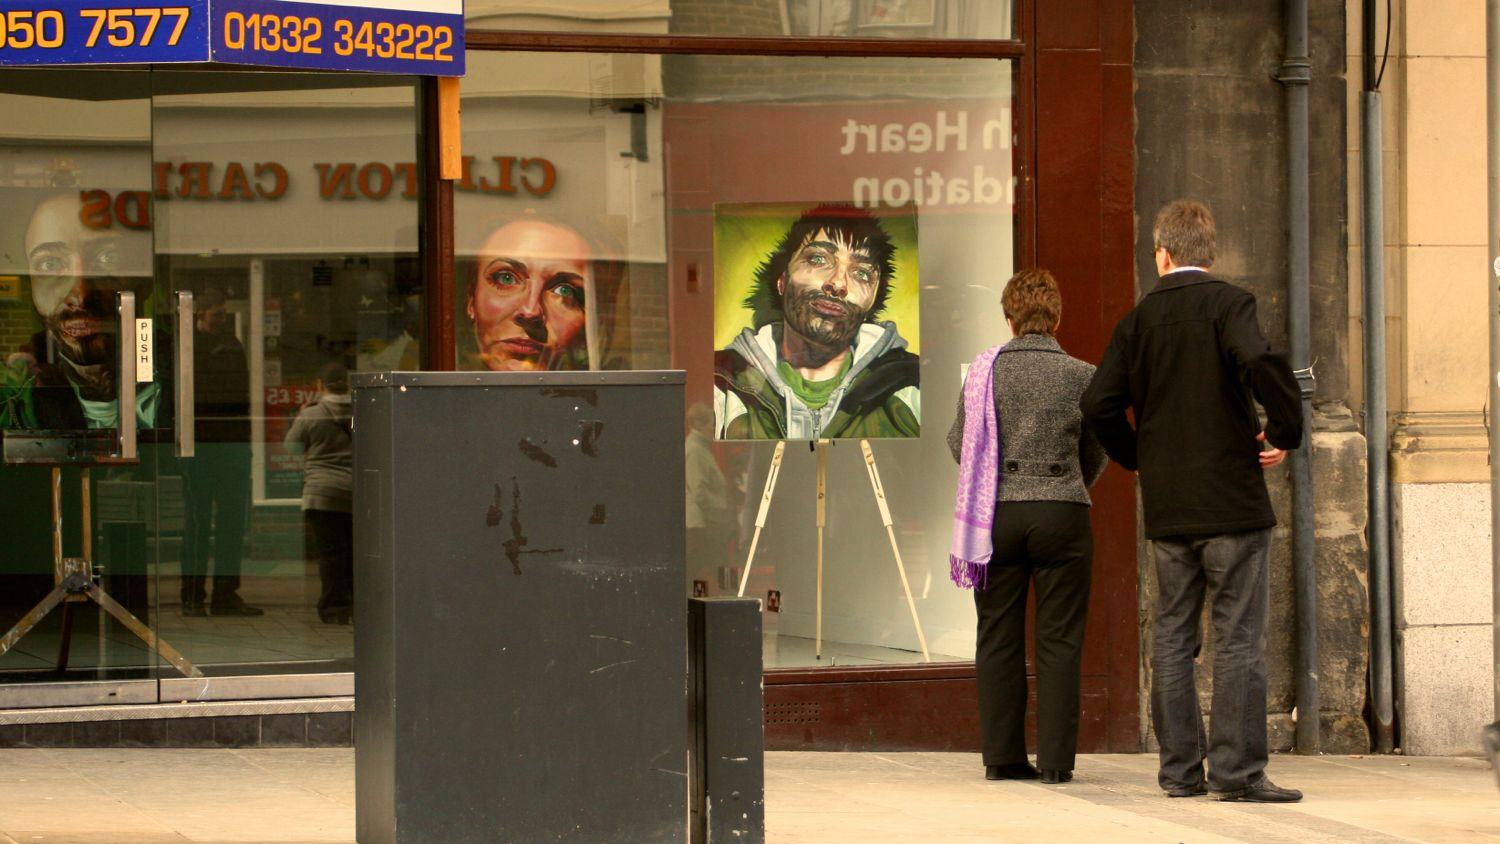 two paintings being view by two people in derby in 2010